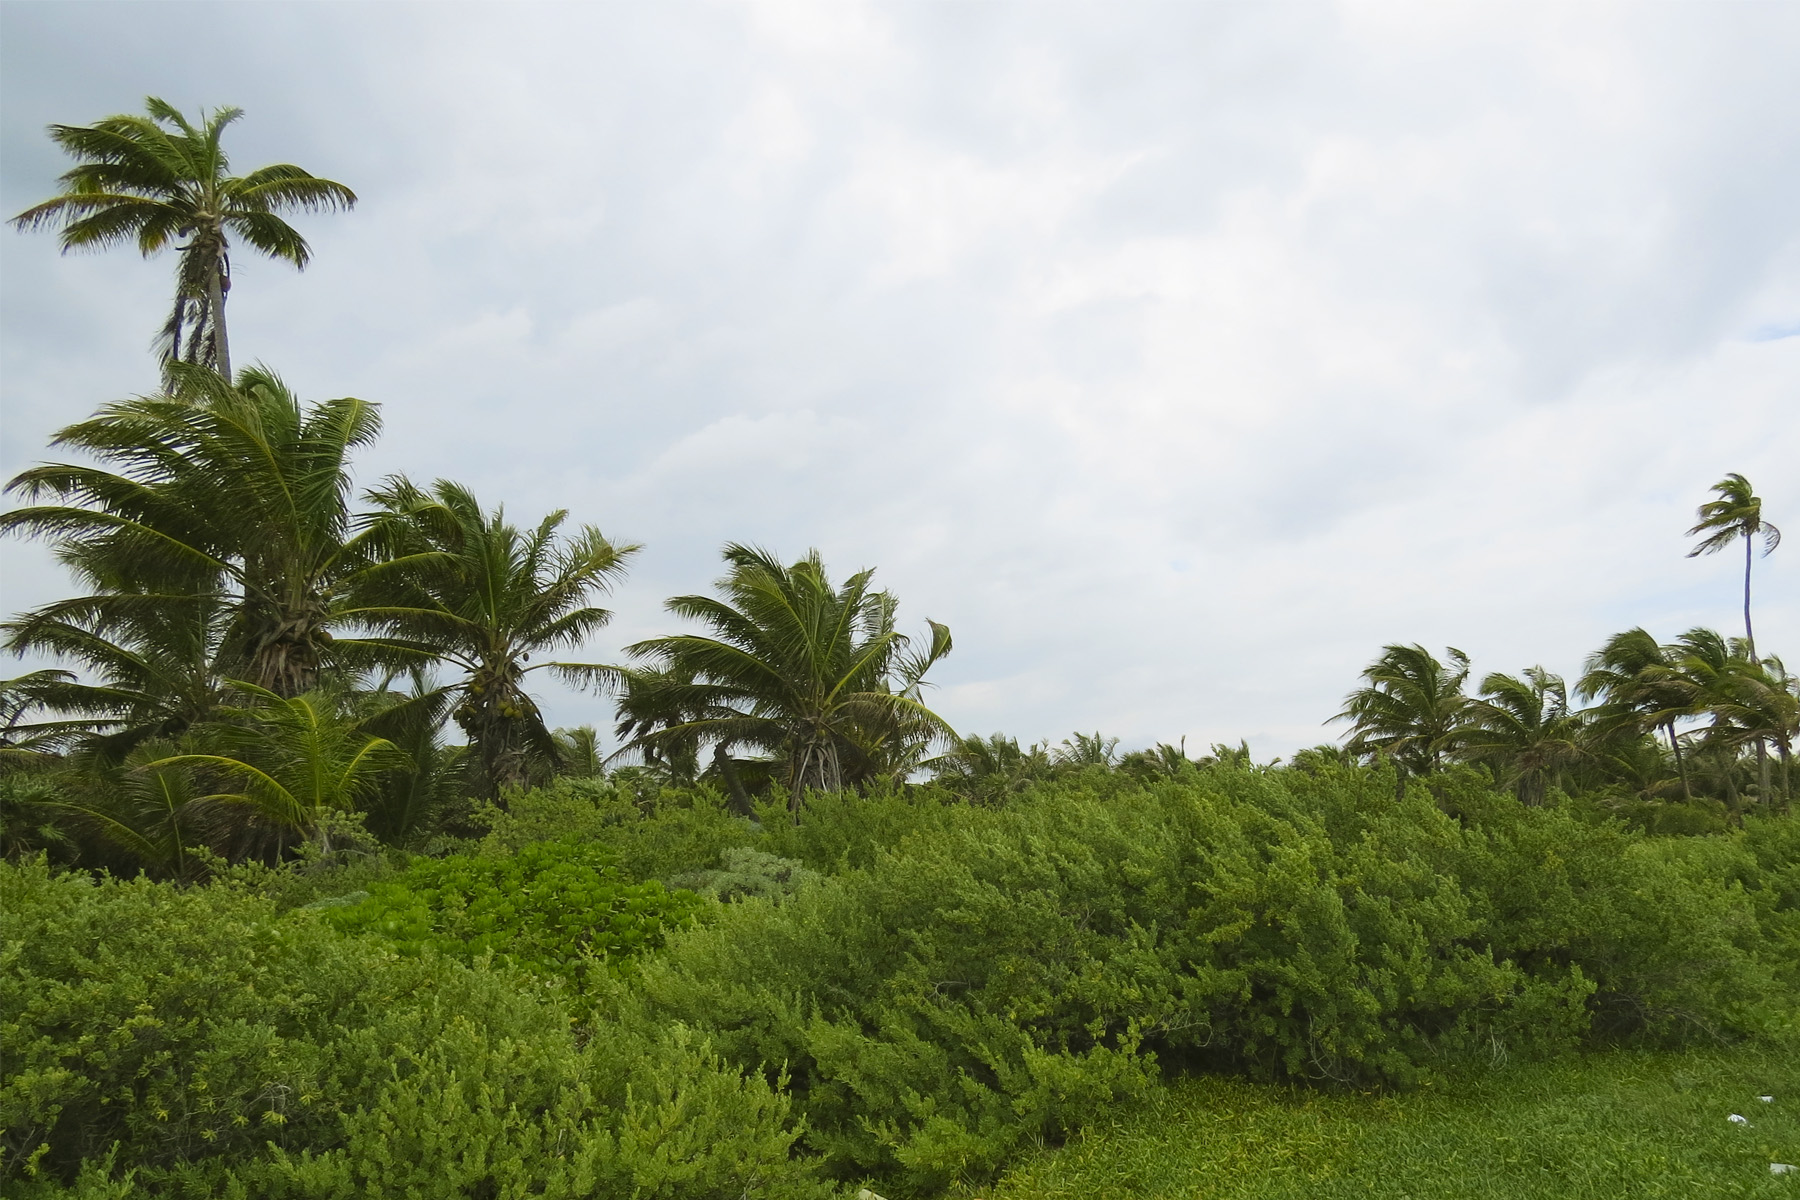 Additional photo for property listing at 1,805 FEET BEACHFRONT LOT IN SIAN KA'AN RESERVE Fracc. 2 Camino a Mahahual - Punta Herrero Tulum, Quintana Roo 77925 Mexico